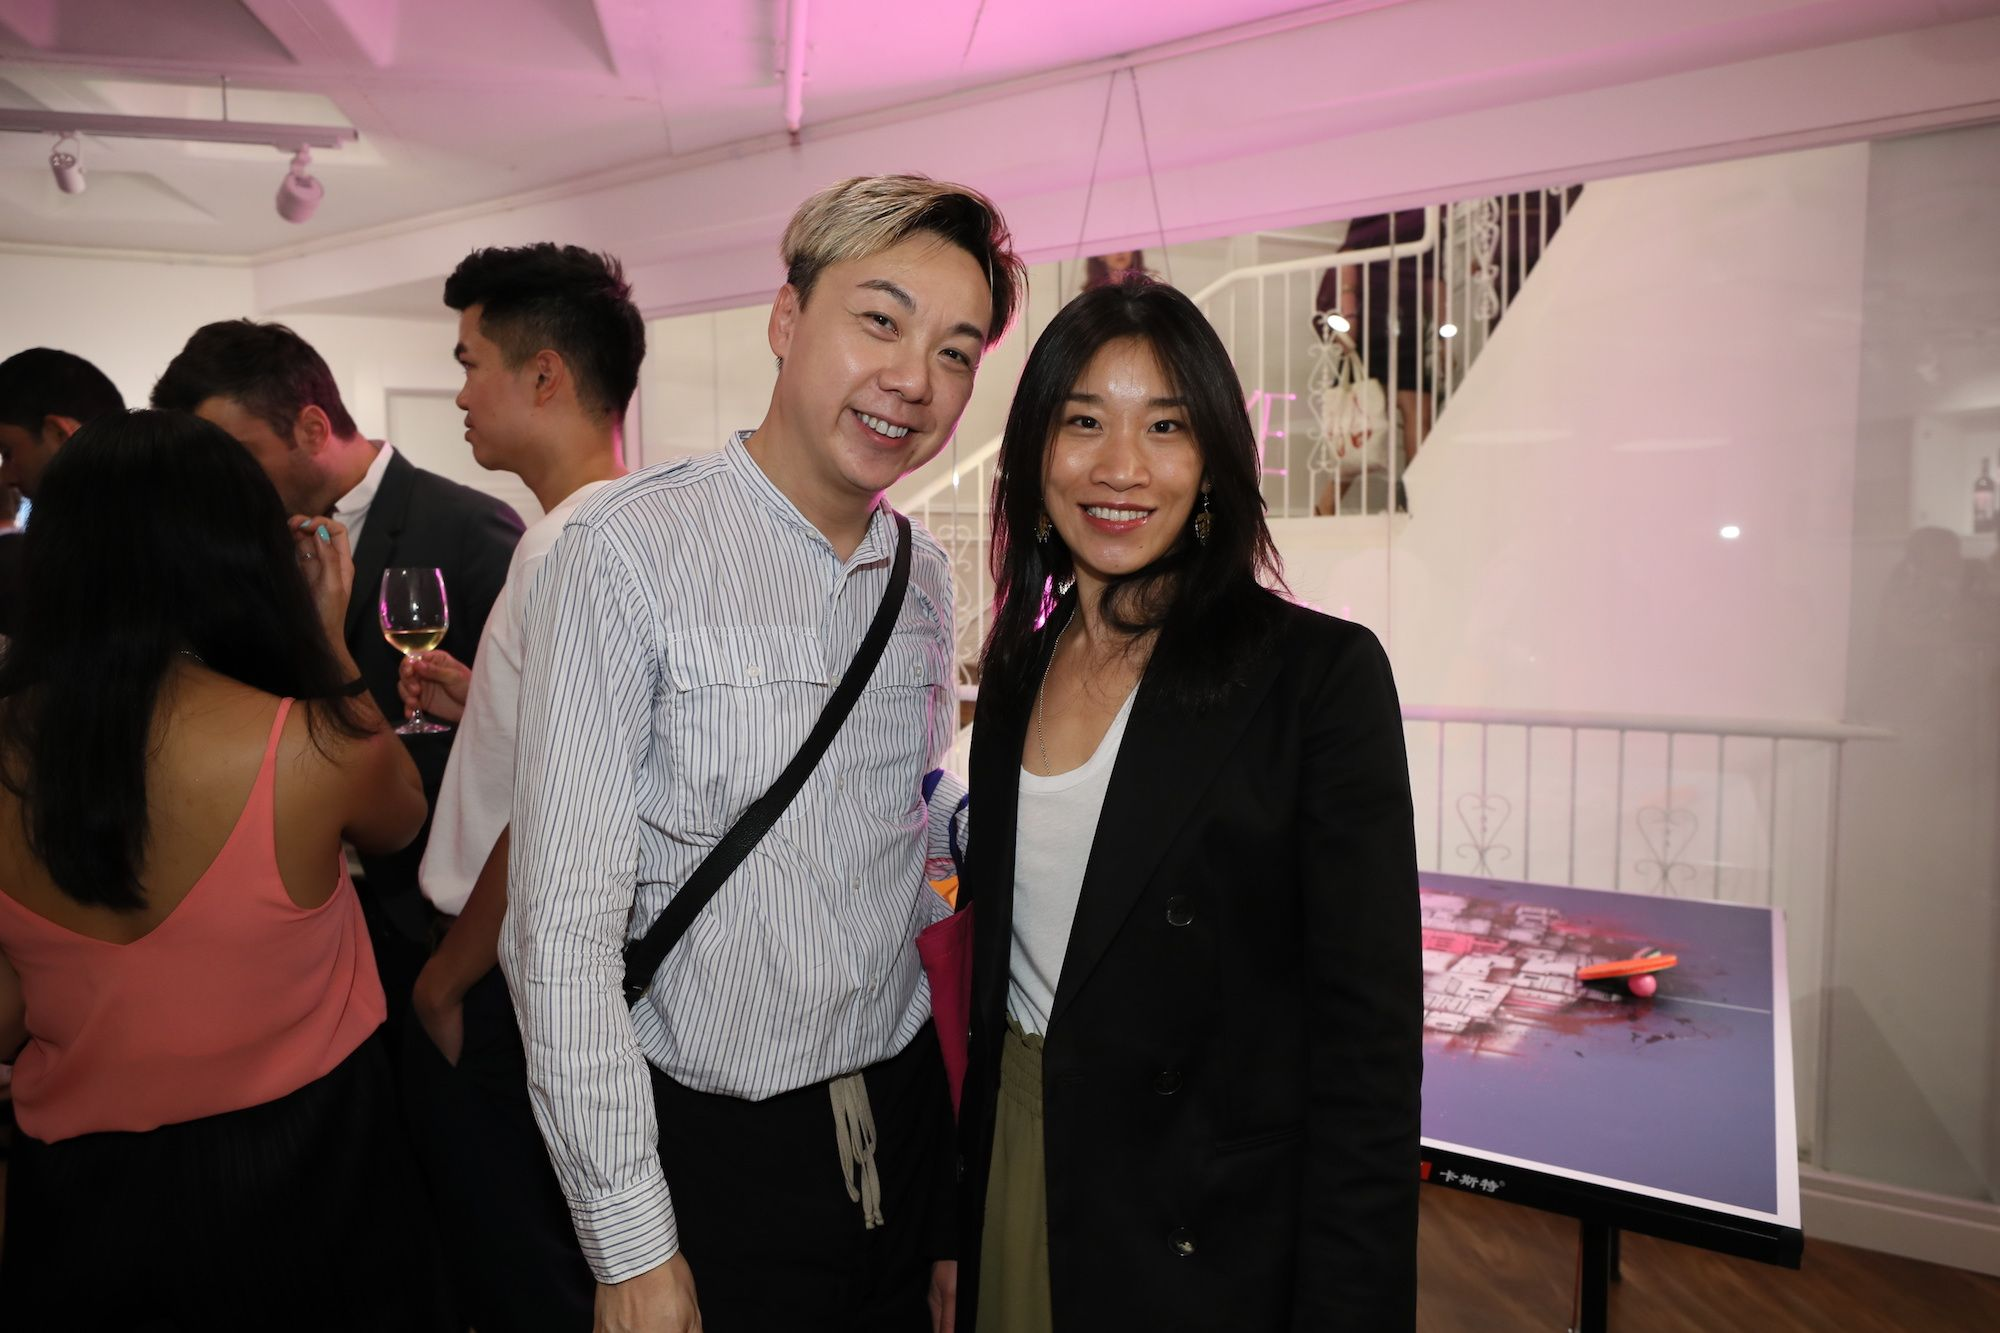 Francis Cheng, Dee Poon